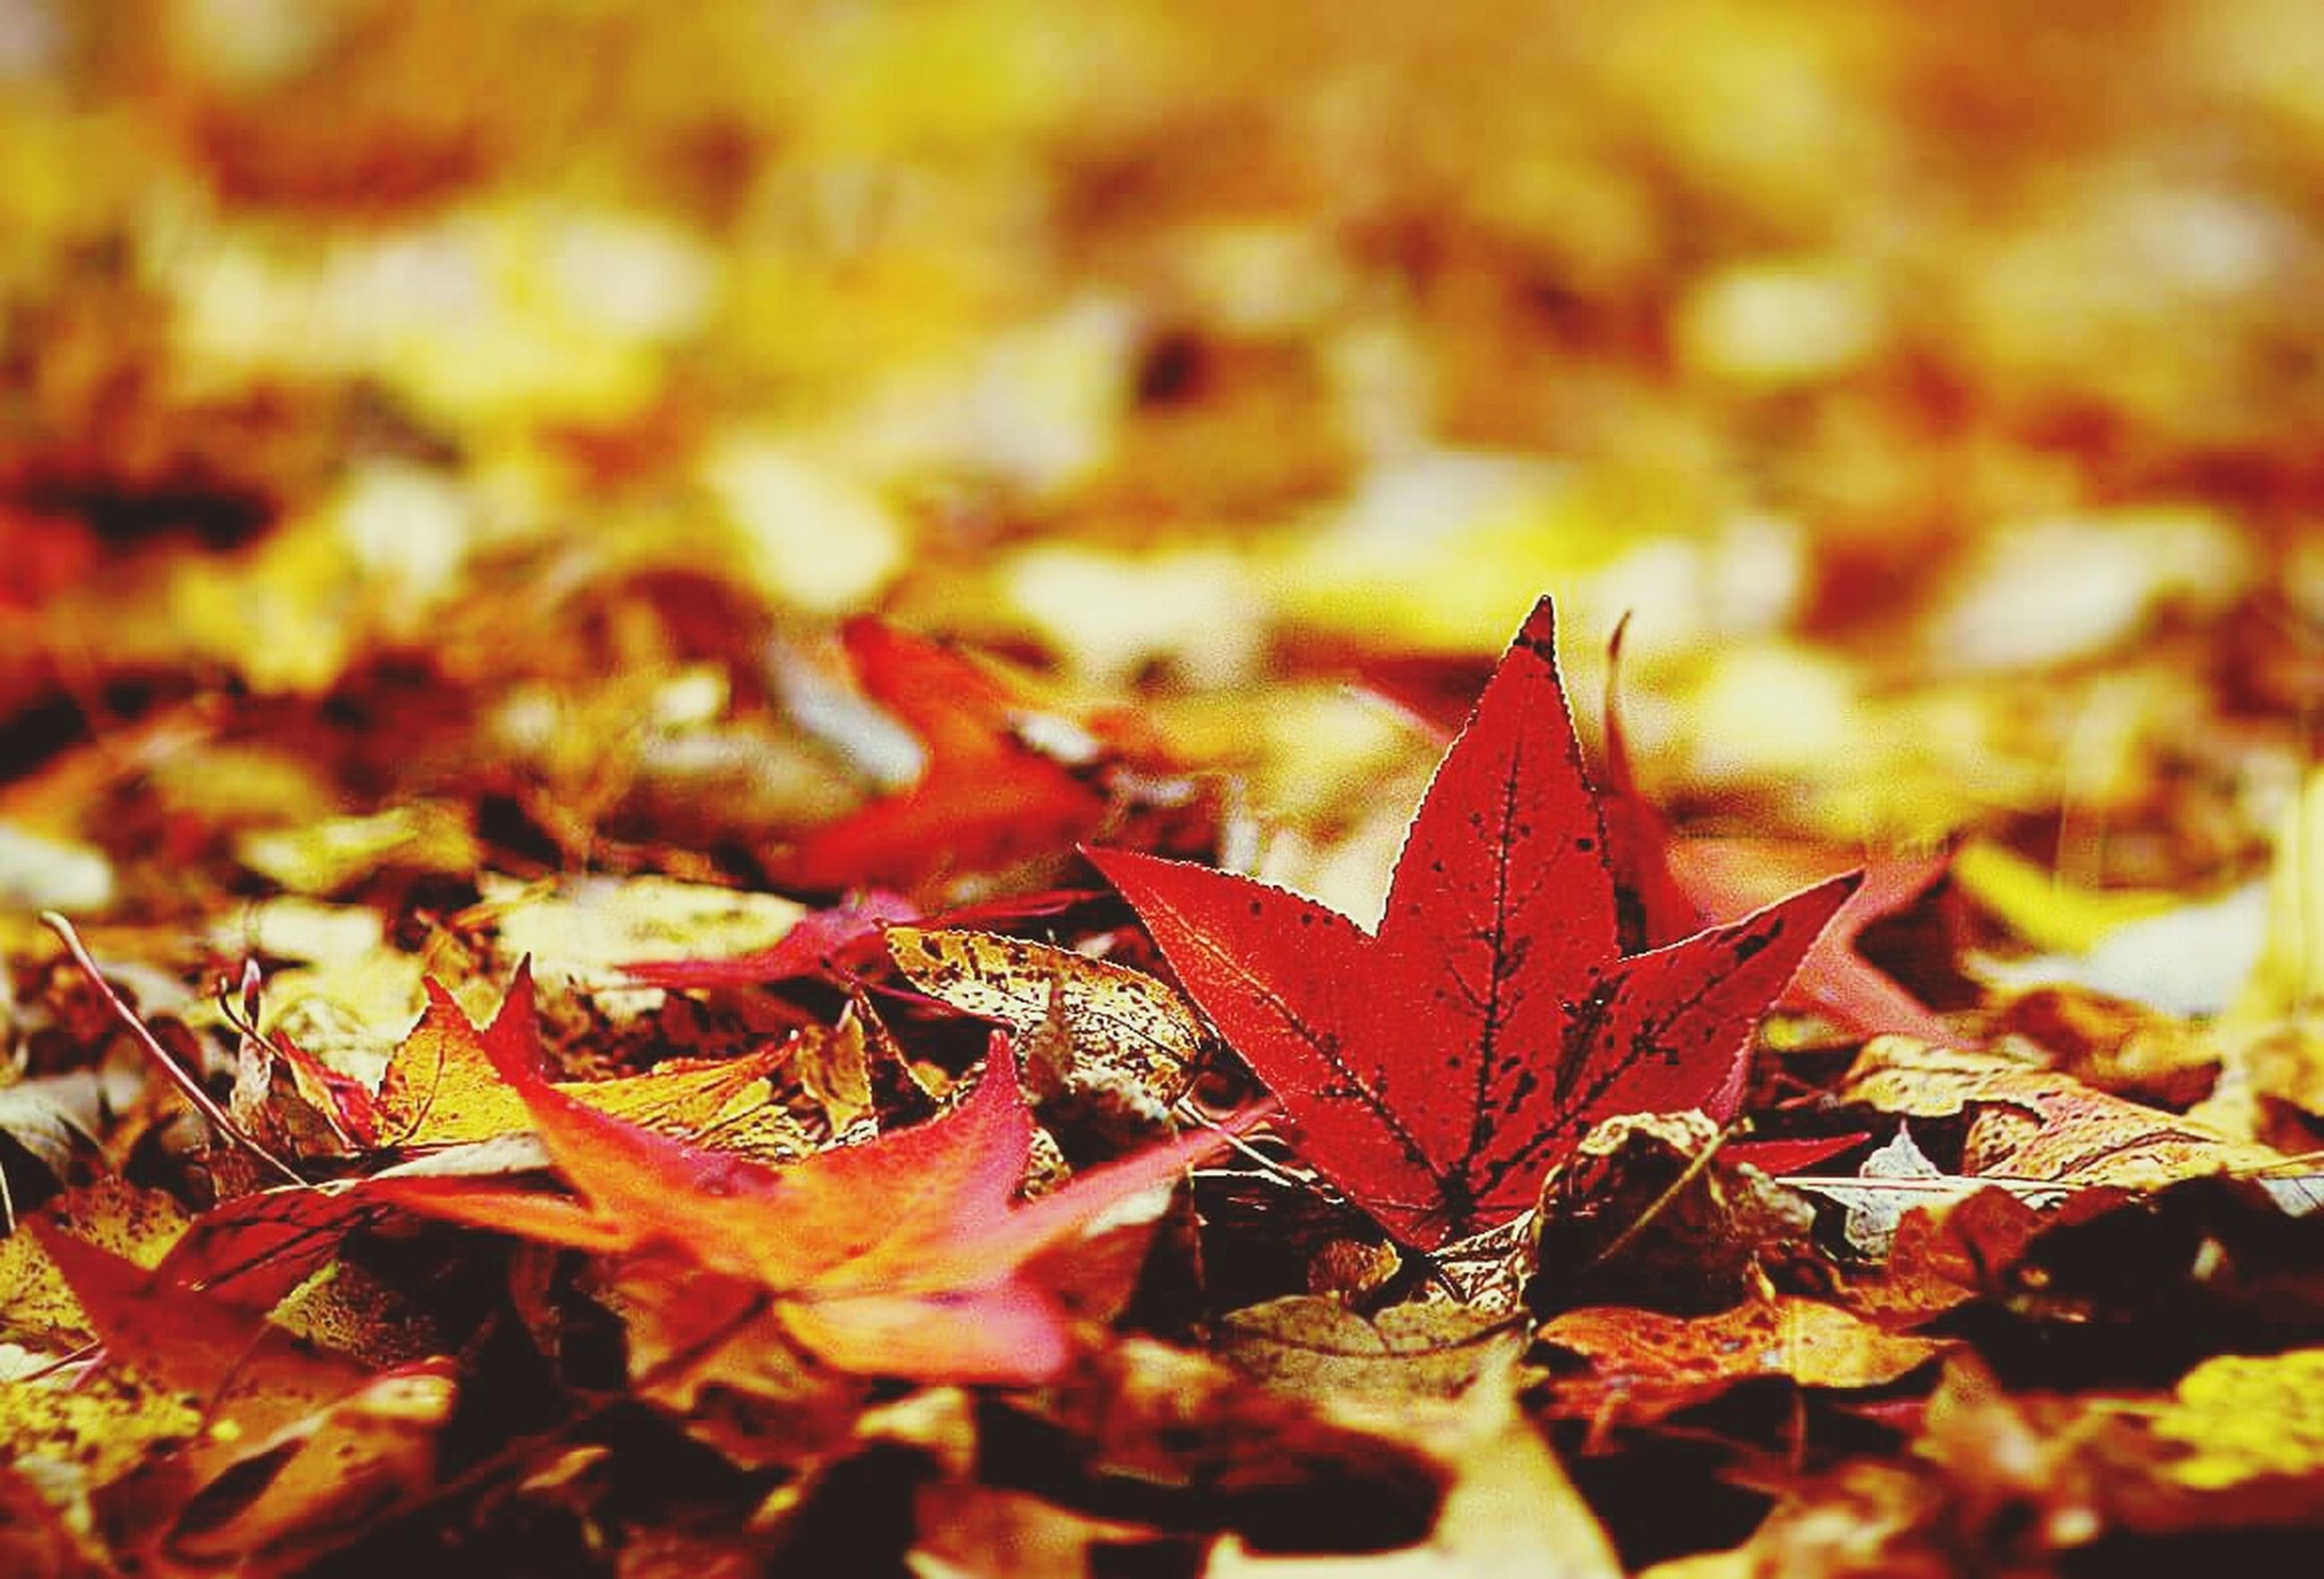 autumn, change, leaf, season, leaves, dry, maple leaf, fallen, orange color, nature, close-up, leaf vein, red, natural pattern, selective focus, fall, tranquility, natural condition, focus on foreground, beauty in nature